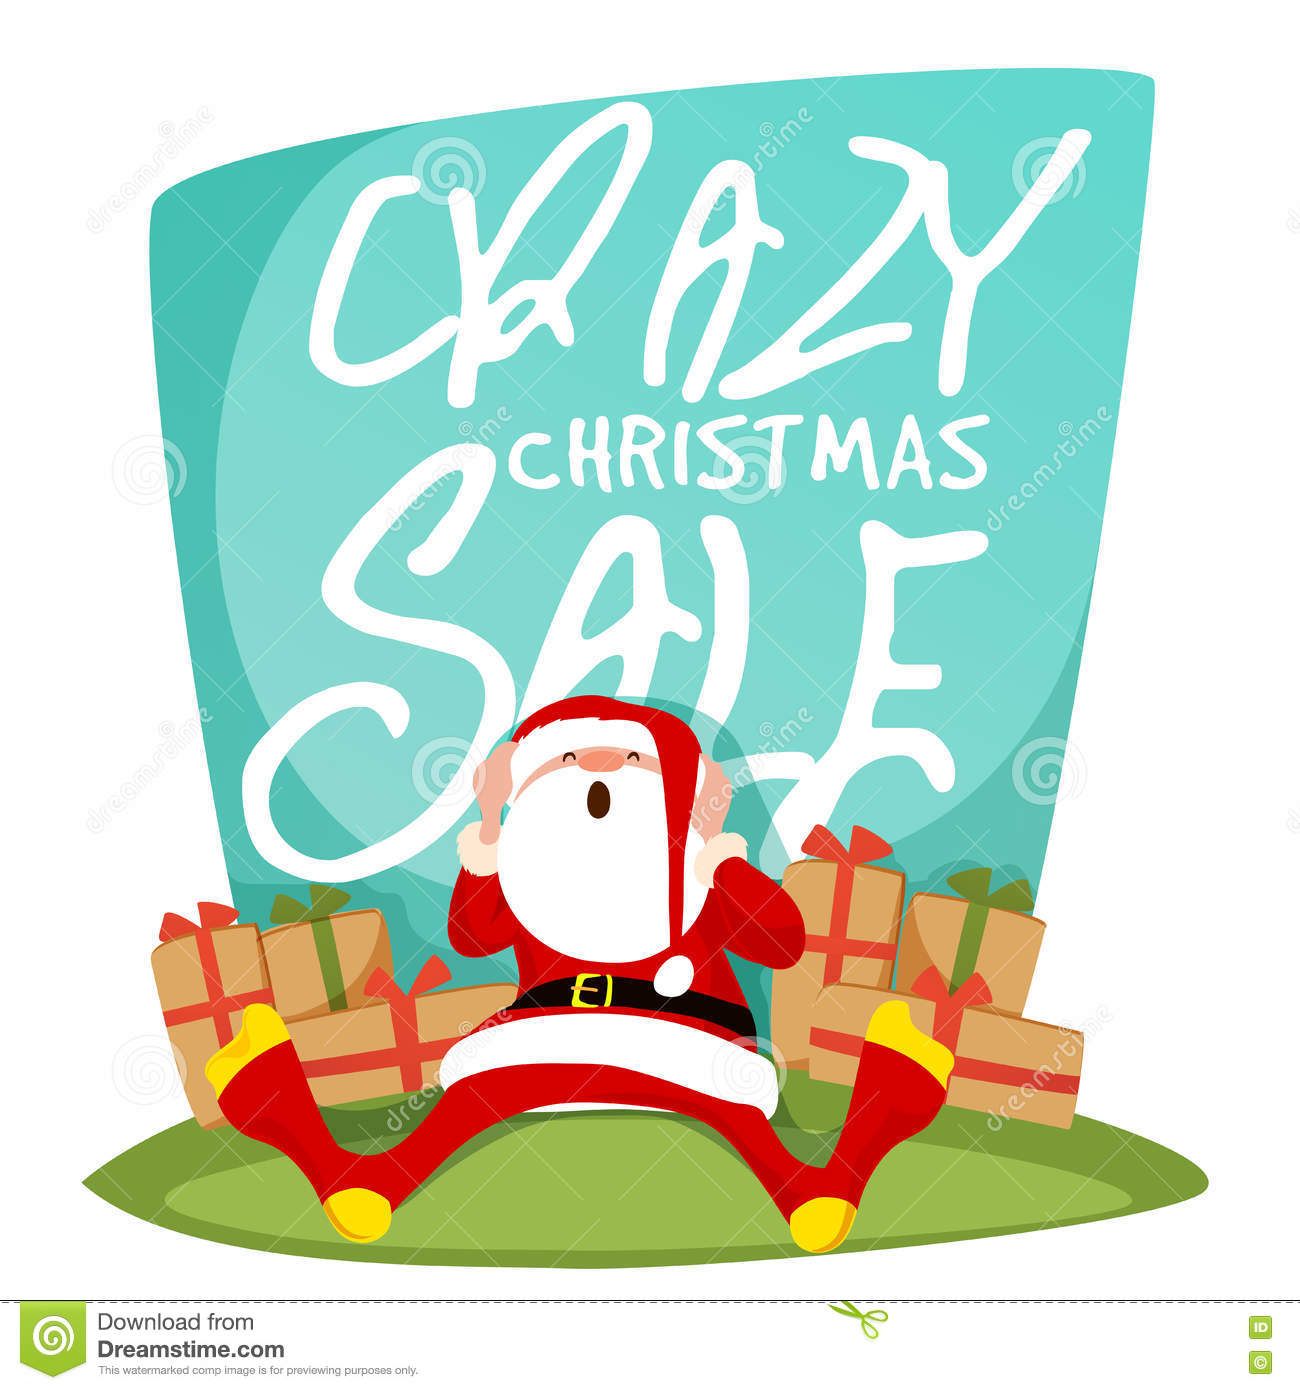 crazy christmas poster banner or flyer stock illustration crazy christmas poster banner or flyer